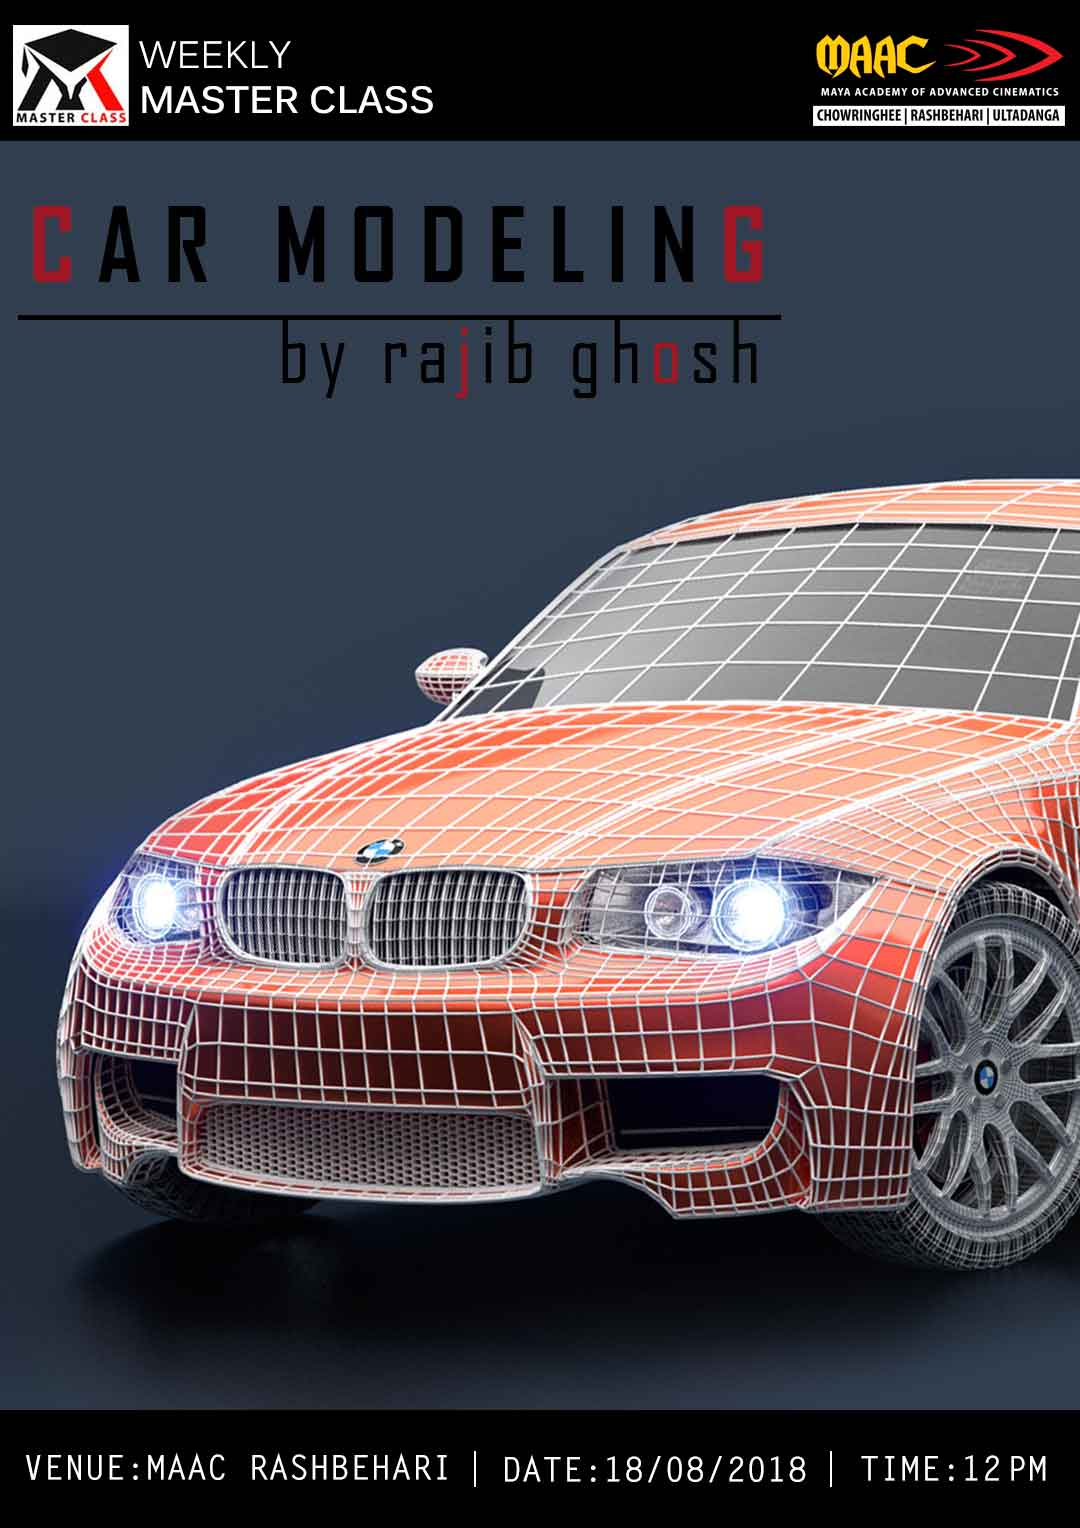 Weekly Master Class on Car Modeling